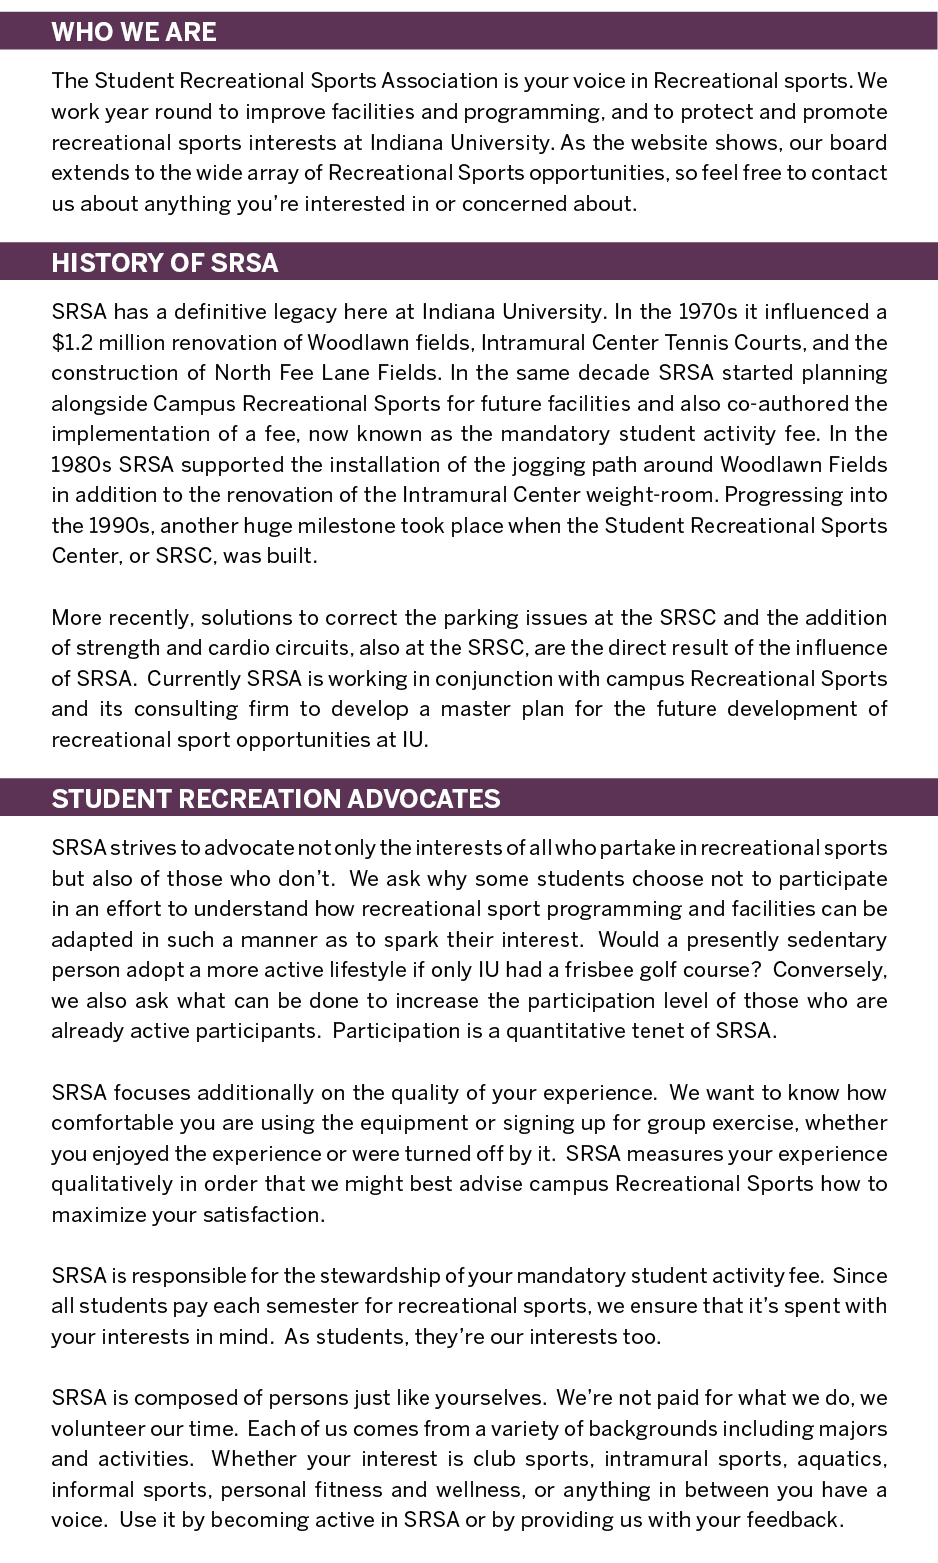 The SRSA monitors, improves, and promotes Recreational Sports opportunities to IU students, faculty and staff!  WHO WE ARE The Student Recreational Sports Association is your voice in Recreational sports. We work year round to improve facilities and programming, and to protect and promote recreational sports interests at Indiana University. As the website shows, our board extends to the wide array of Recreational Sports opportunities, so feel free to contact us about anything you're interested in or concerned about.  HISTORY OF SRSA SRSA has a definitive legacy here at Indiana University. In the 1970s it influenced a $1.2 million renovation of Woodlawn fields, Intramural Center Tennis Courts, and the construction of North Fee Lane Fields. In the same decade SRSA started planning alongside Campus Recreational Sports for future facilities and also co-authored the implementation of a fee, now known as the mandatory student activity fee. In the 1980s SRSA supported the installation of the jogging path around Woodlawn Fields in addition to the renovation of the Intramural Center weight-room. Progressing into the 1990s, another huge milestone took place when the Student Recreational Sports Center, or SRSC, was built.  More recently, solutions to correct the parking issues at the SRSC and the addition of strength and cardio circuits, also at the SRSC, are the direct result of the influence of SRSA.  Currently SRSA is working in conjunction with campus Recreational Sports and its consulting firm to develop a master plan for the future development of recreational sport opportunities at IU.  STUDENT RECREATION ADVOCATES SRSA strives to advocate not only the interests of all who partake in recreational sports but also of those who don't.  We ask why some students choose not to participate in an effort to understand how recreational sport programming and facilities can be adapted in such a manner as to spark their interest.  Would a presently sedentary person adopt a more active lifestyle if only IU had a frisbee golf course?  Conversely, we also ask what can be done to increase the participation level of those who are already active participants.  Participation is a quantitative tenet of SRSA.  SRSA focuses additionally on the quality of your experience.  We want to know how comfortable you are using the equipment or signing up for group exercise, whether you enjoyed the experience or were turned off by it.  SRSA measures your experience qualitatively in order that we might best advise campus Recreational Sports how to maximize your satisfaction.  SRSA is responsible for the stewardship of your mandatory student activity fee.  Since all students pay each semester for recreational sports, we ensure that it's spent with your interests in mind.  As students, they're our interests too.  SRSA is composed of persons just like yourselves.  We're not paid for what we do, we volunteer our time.  Each of us comes from a variety of backgrounds including majors and activities.  Whether your interest is club sports, intramural sports, aquatics, informal sports, personal fitness and wellness, or anything in between you have a voice.  Use it by becoming active in SRSA or by providing us with your feedback.